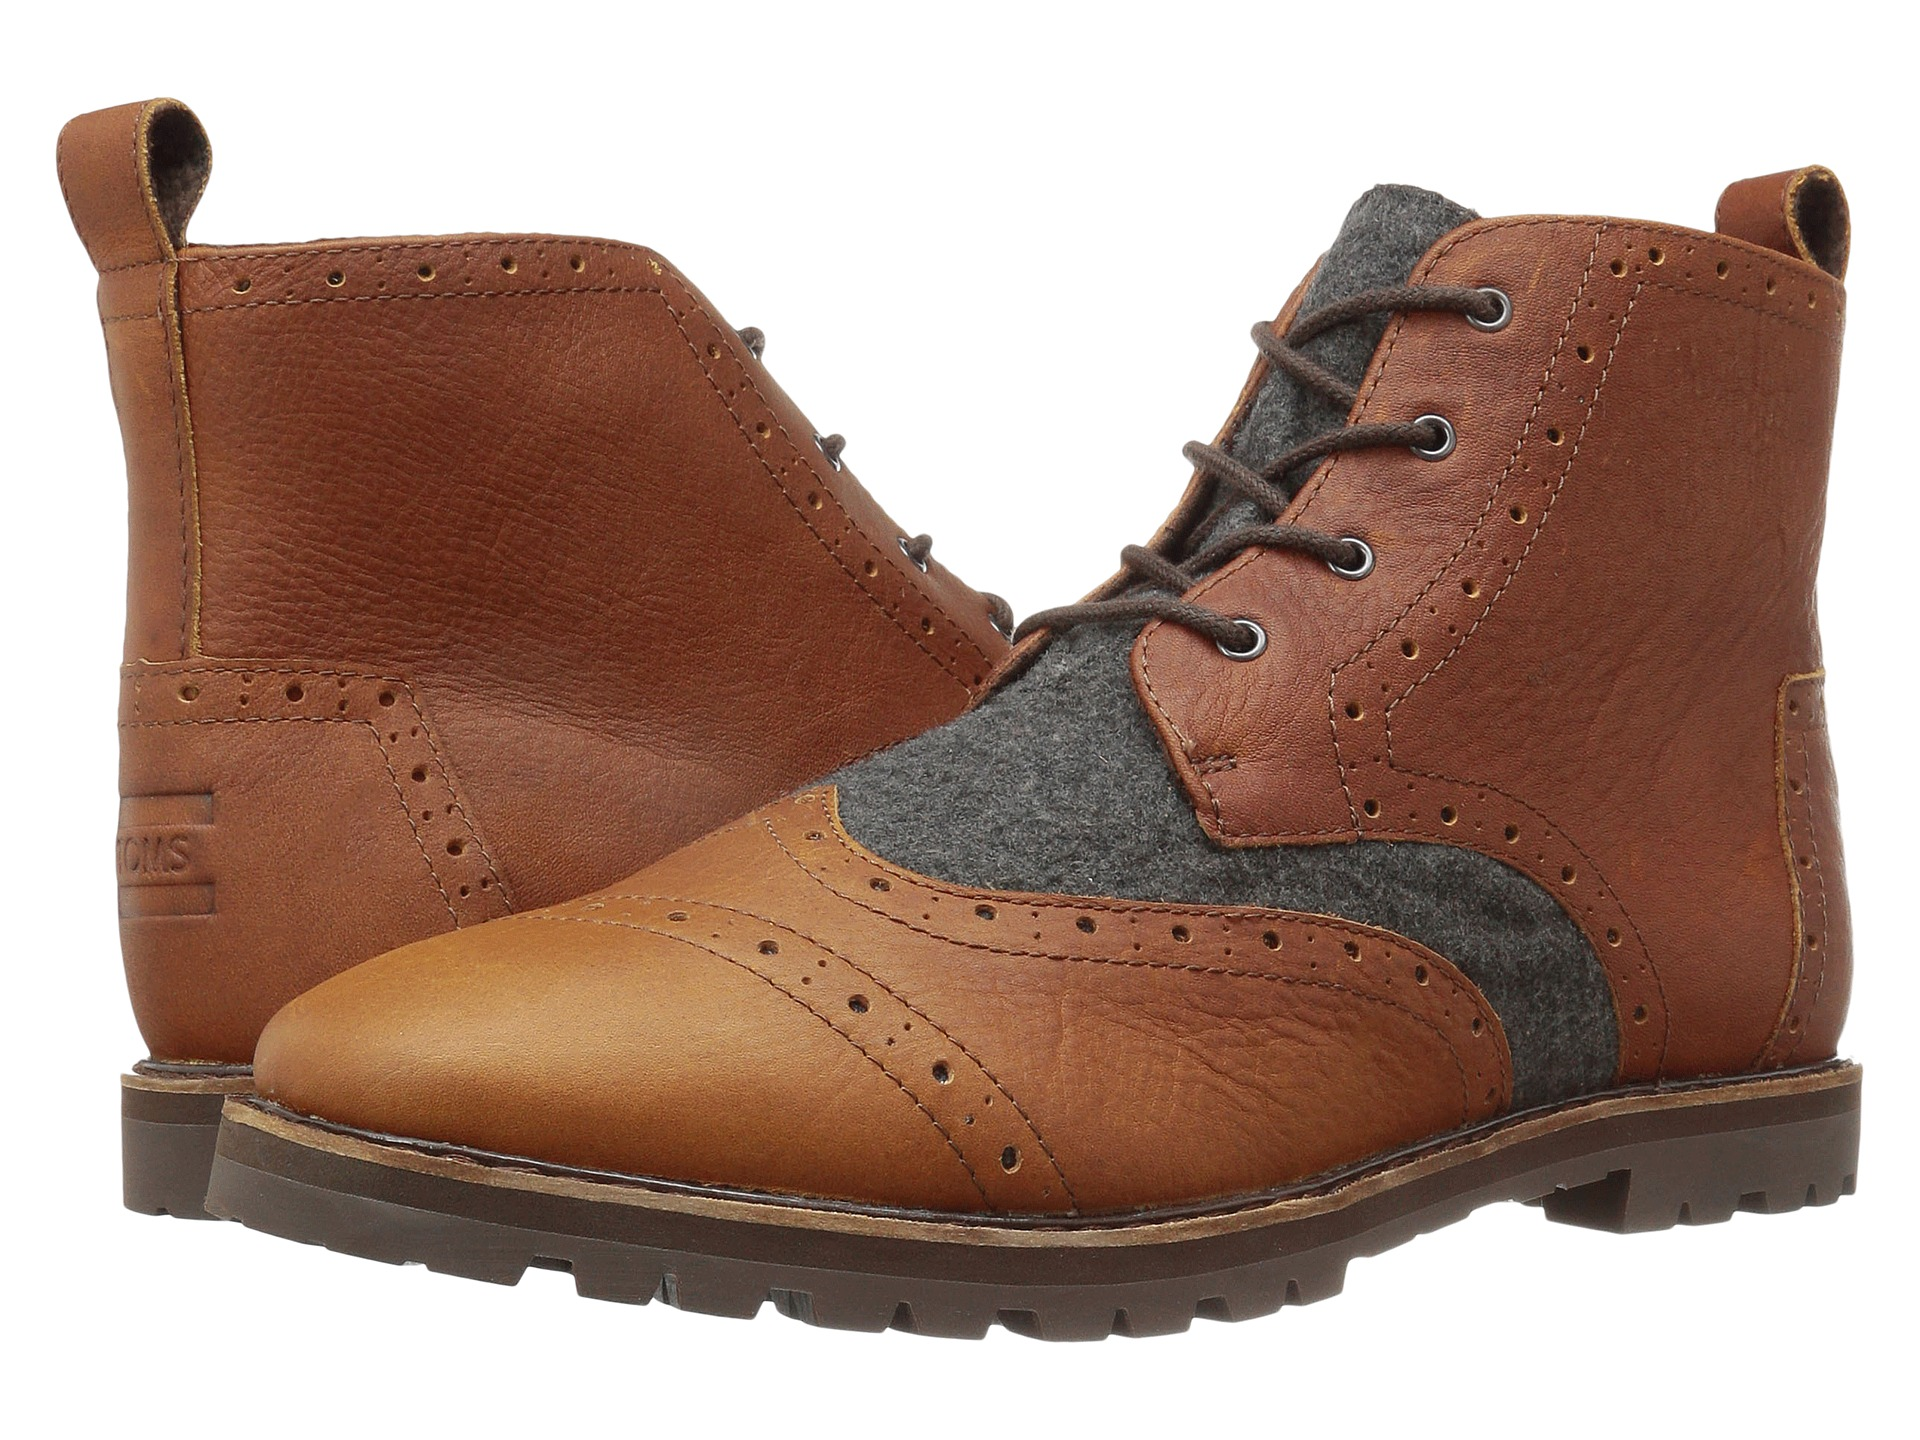 toms brogue boot brown leather grey wool zappos free